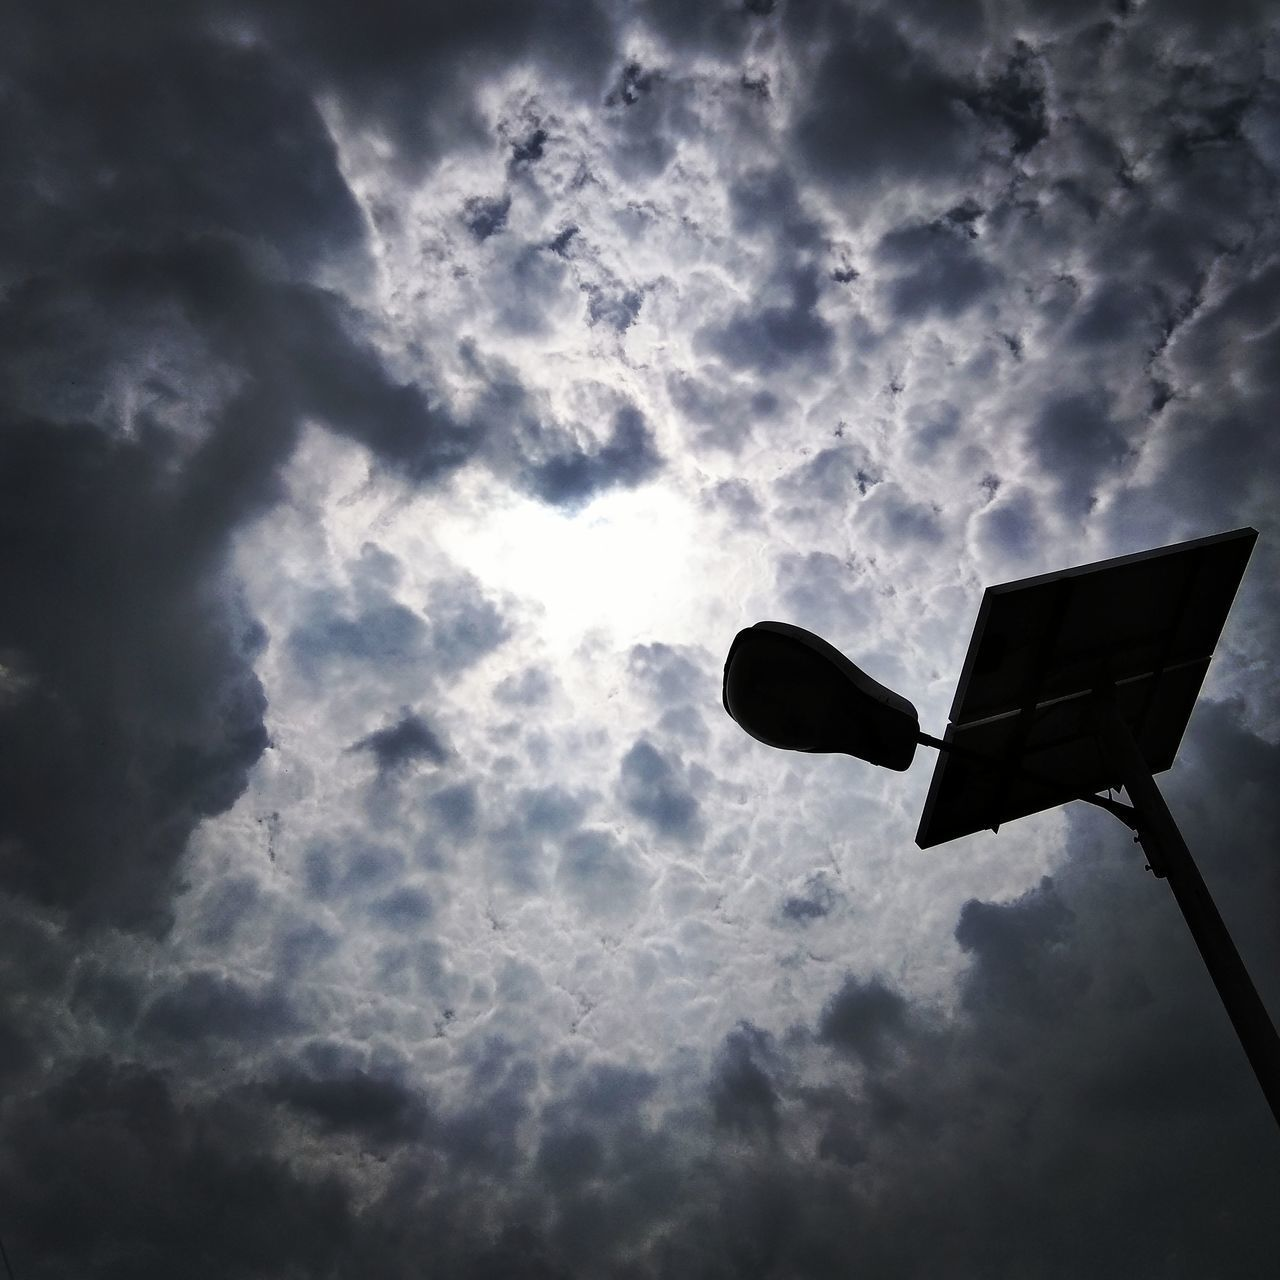 LOW ANGLE VIEW OF SILHOUETTE OF SKY